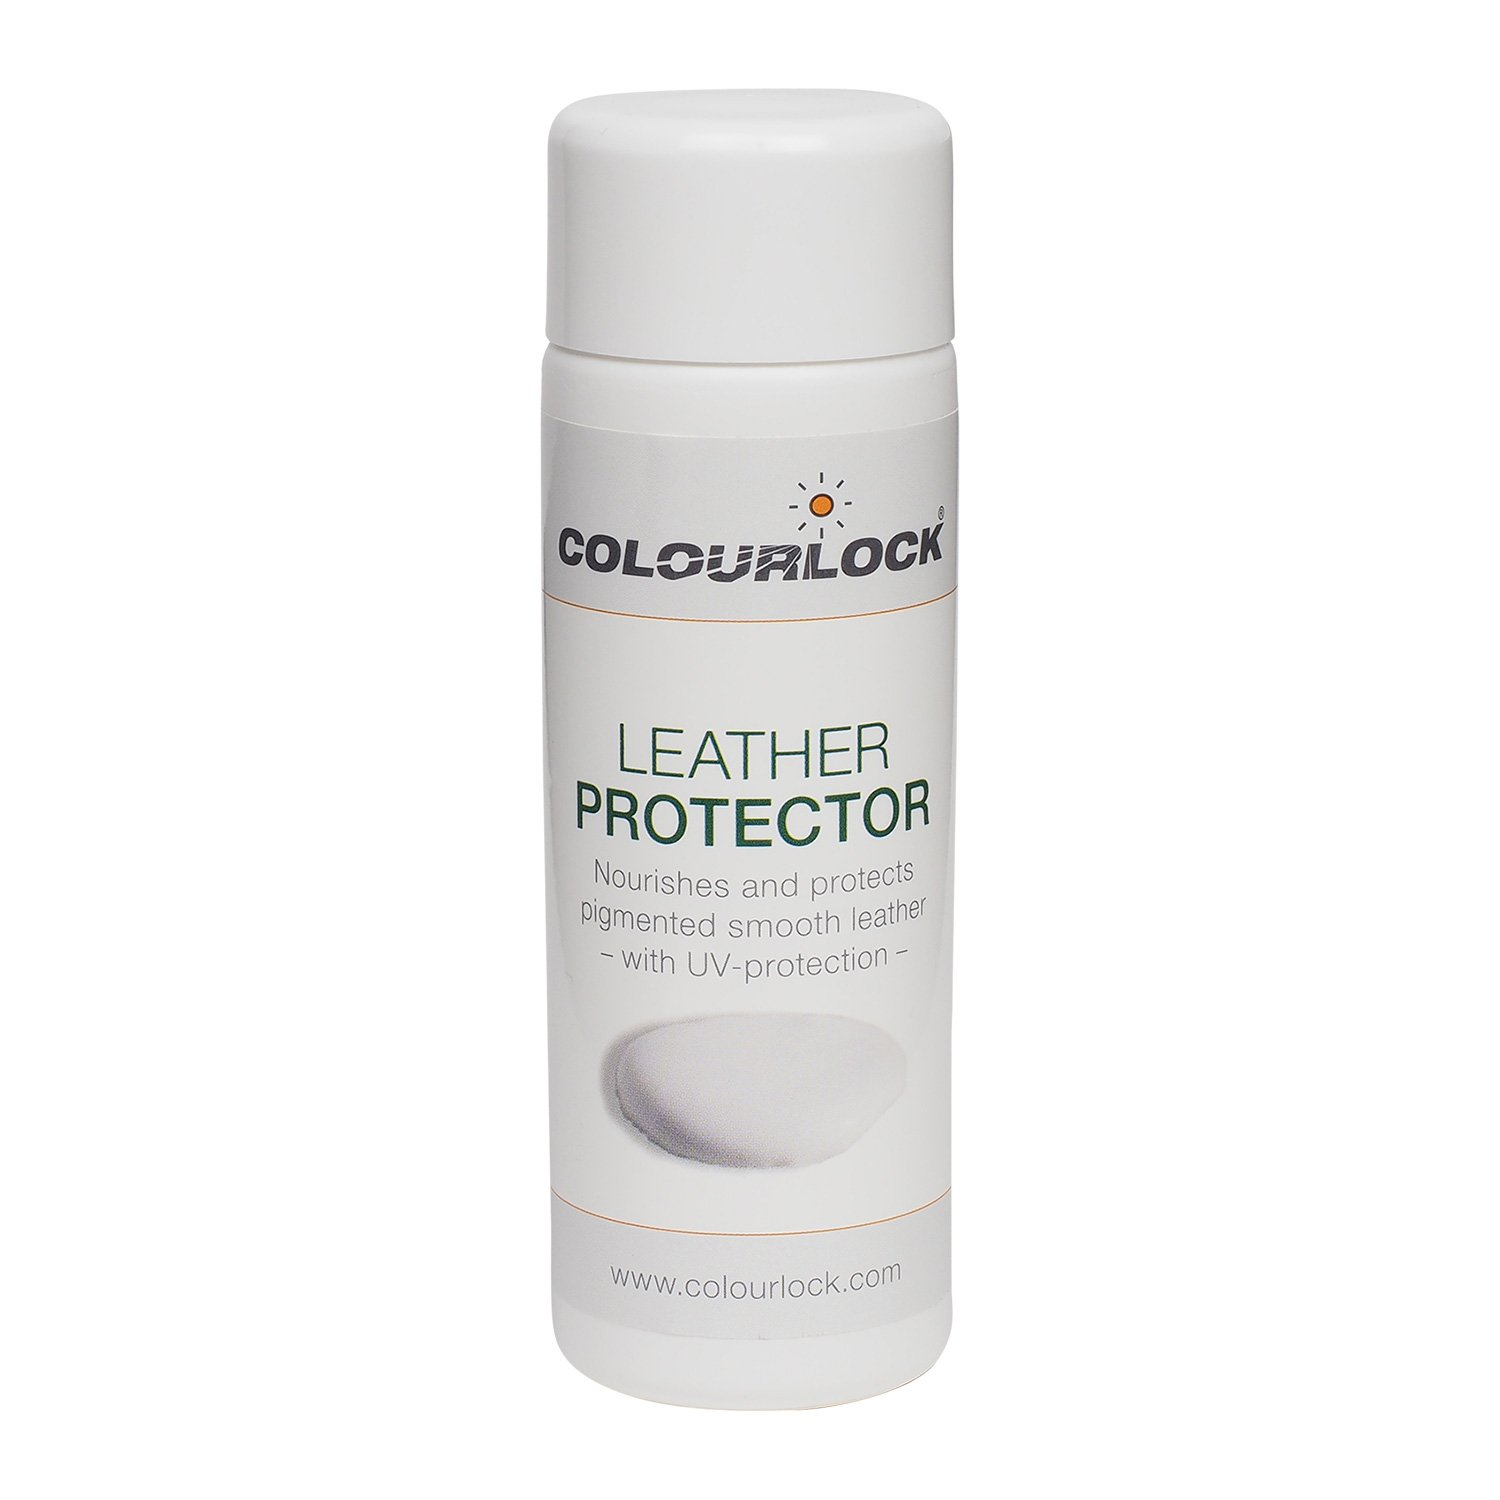 Colourlock Leather Protector Feed, Cream, Restorer car Leather interiors, Furniture, Bags Clothing (150 ml)